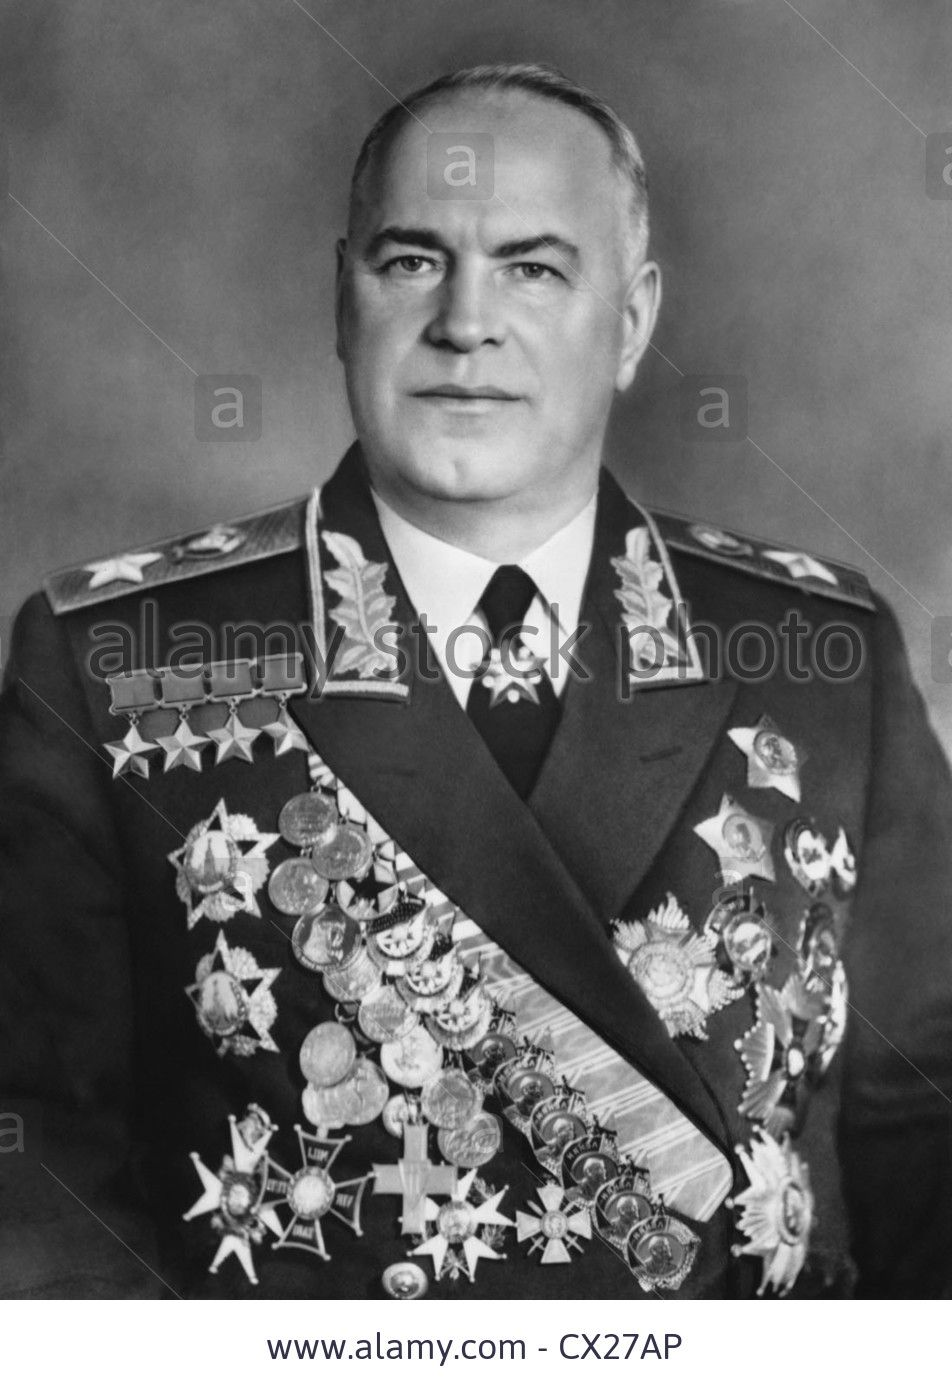 USSR  MOSCOW  Marshal of the Soviet Union Georgy Zhukov    Soviet     USSR  MOSCOW  Marshal of the Soviet Union Georgy Zhukov    Soviet and  Commie   Pinterest   Soviet union  Moscow and Ww2 history